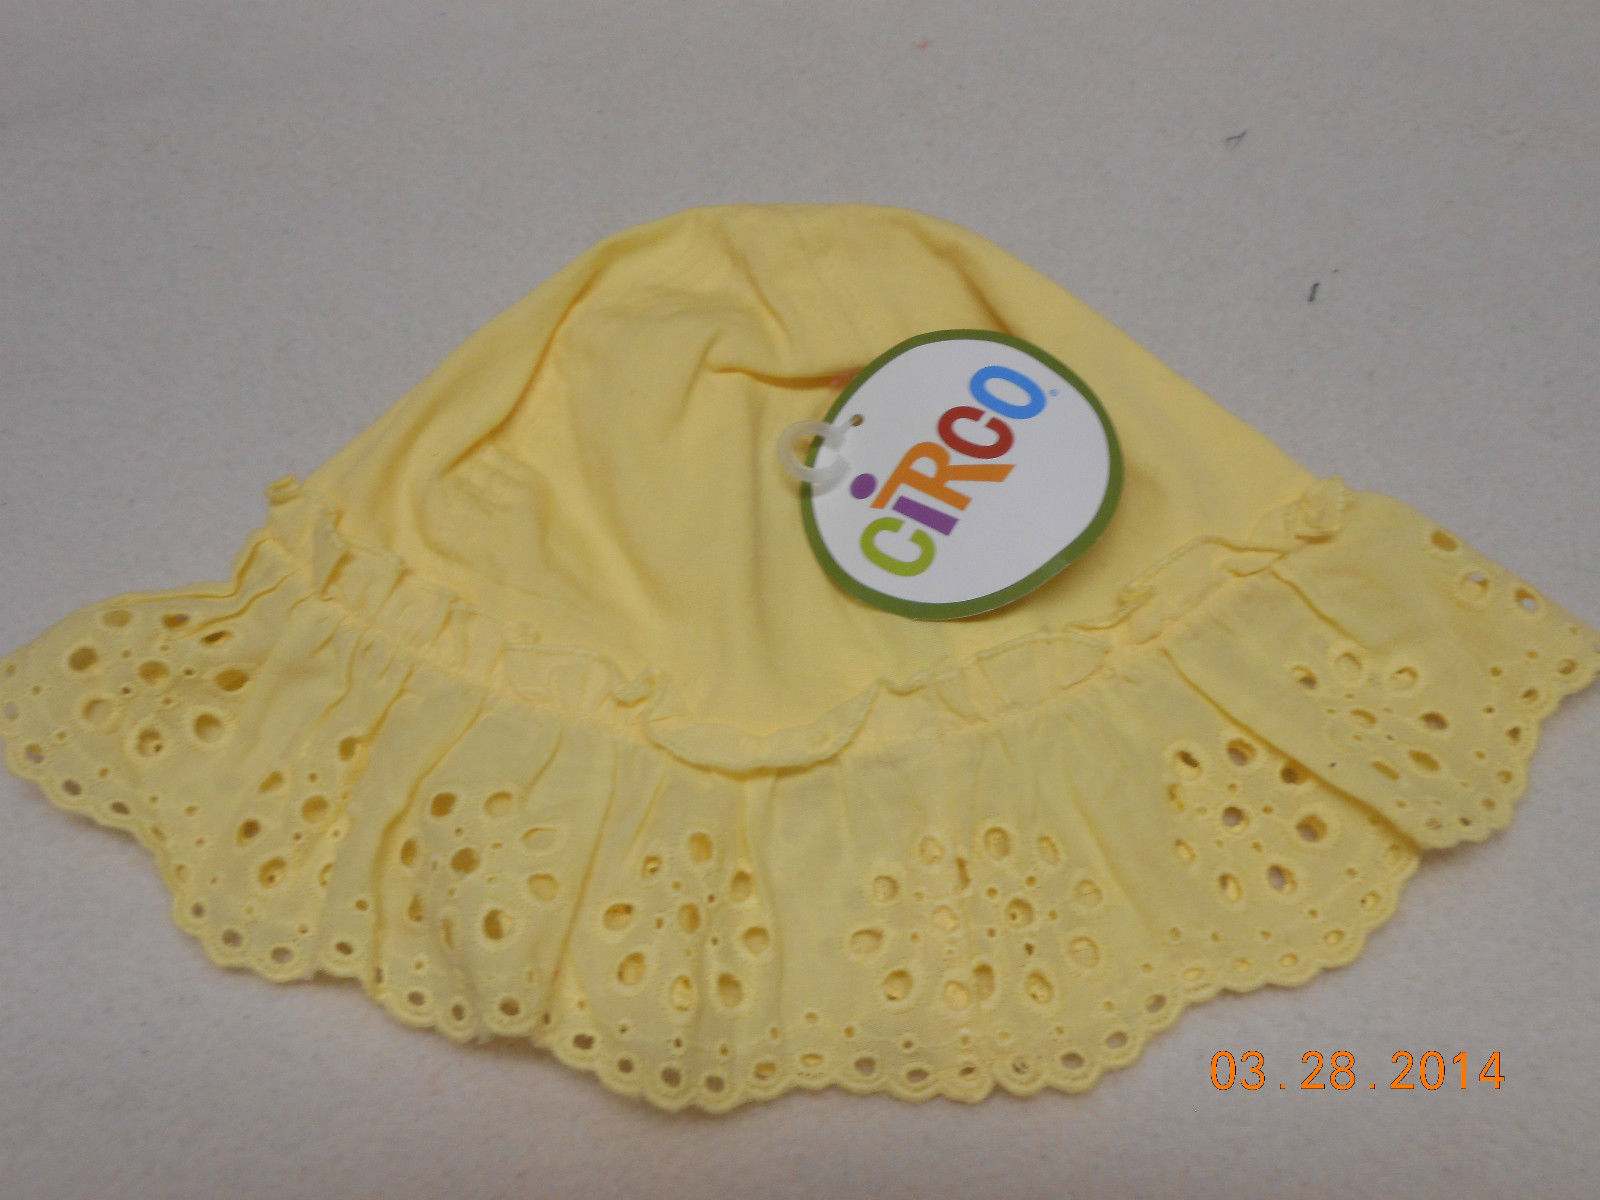 Primary image for NEW BRIGHT YELLOW CIRCO BABY TODDLER SUN BONNET SZ 18 MONTHS EYELET BUCKET HAT